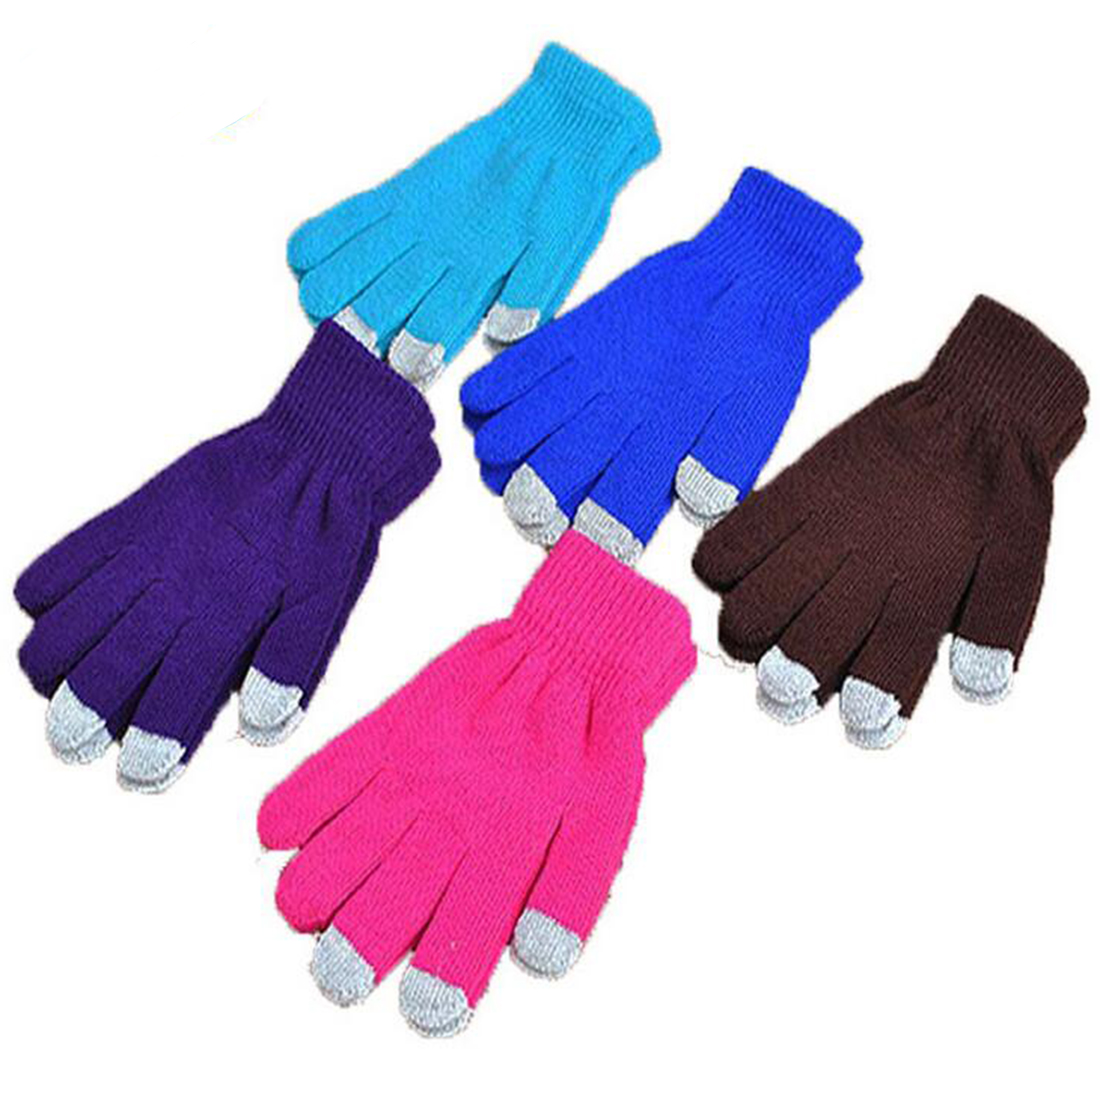 Gloves us Women Men Winter Touch Screen Gloves Warm Knit Texting Mittens for Smartphone